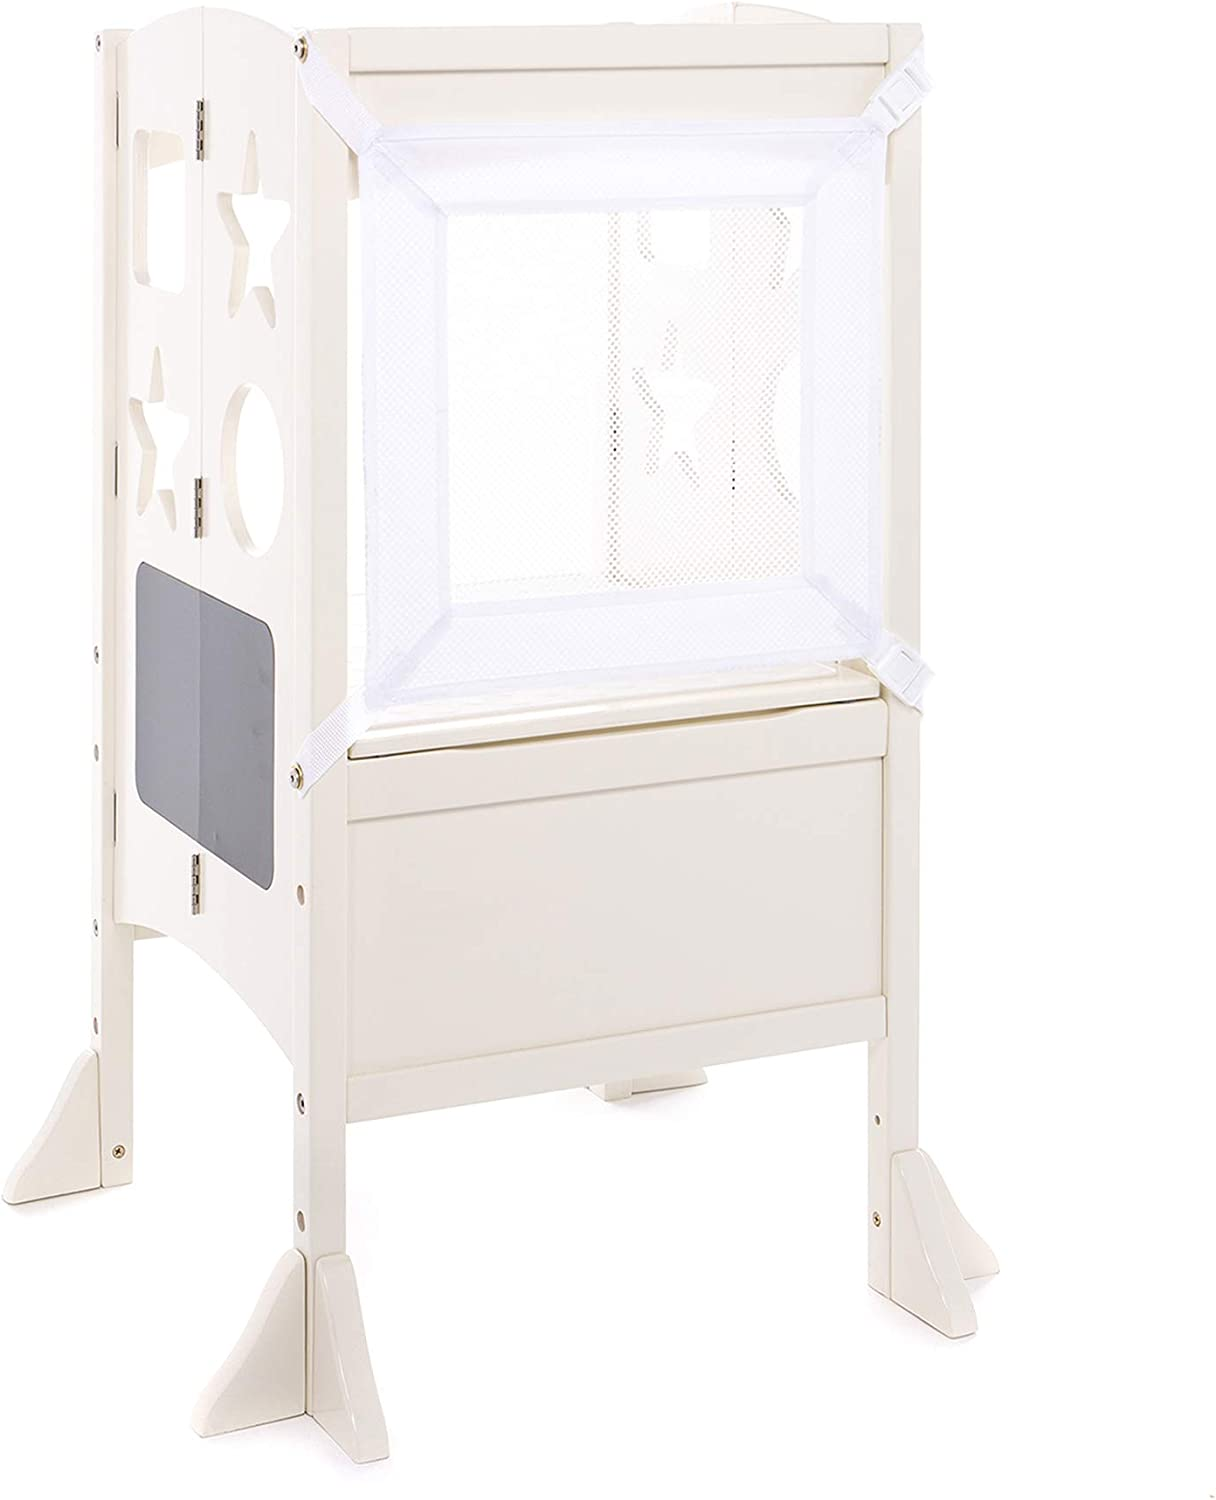 Guidecraft Heartwood Kitchen Helper Stool Little Kids Learning Furniture Folding Step Stool for Toddlers White W//Keeper and Non-Slip Mat: Adjustable Height Wooden Baking Tower